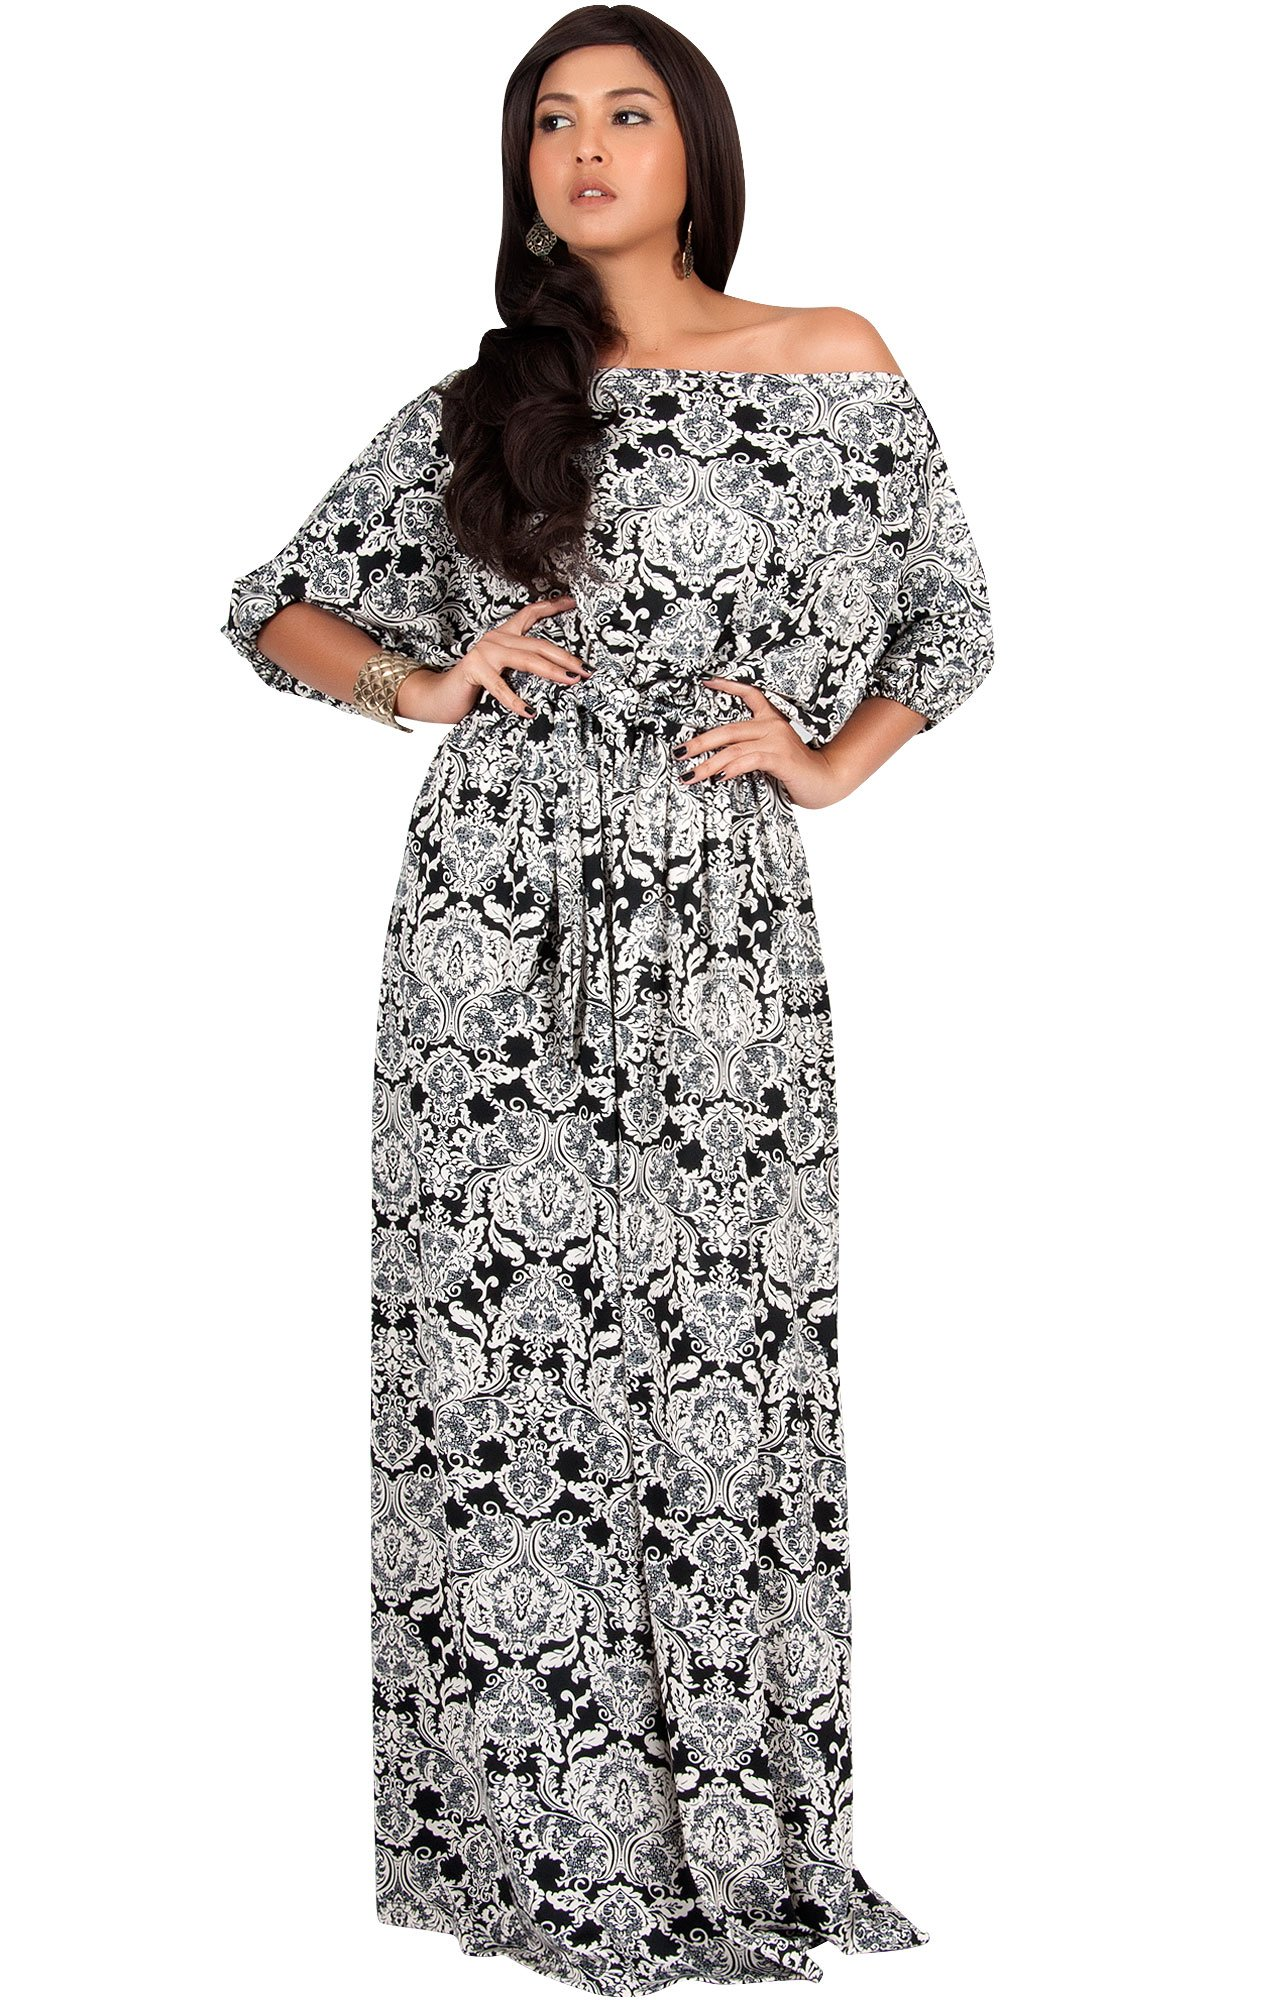 62cbe196c18 KOH KOH Plus Size Women Long Sexy One Off Shoulder Print Casual Flowy 3 4  Short Sleeve Summer Cute Boho Bohemian Sexy Gown Gowns Maxi Dress Dresses